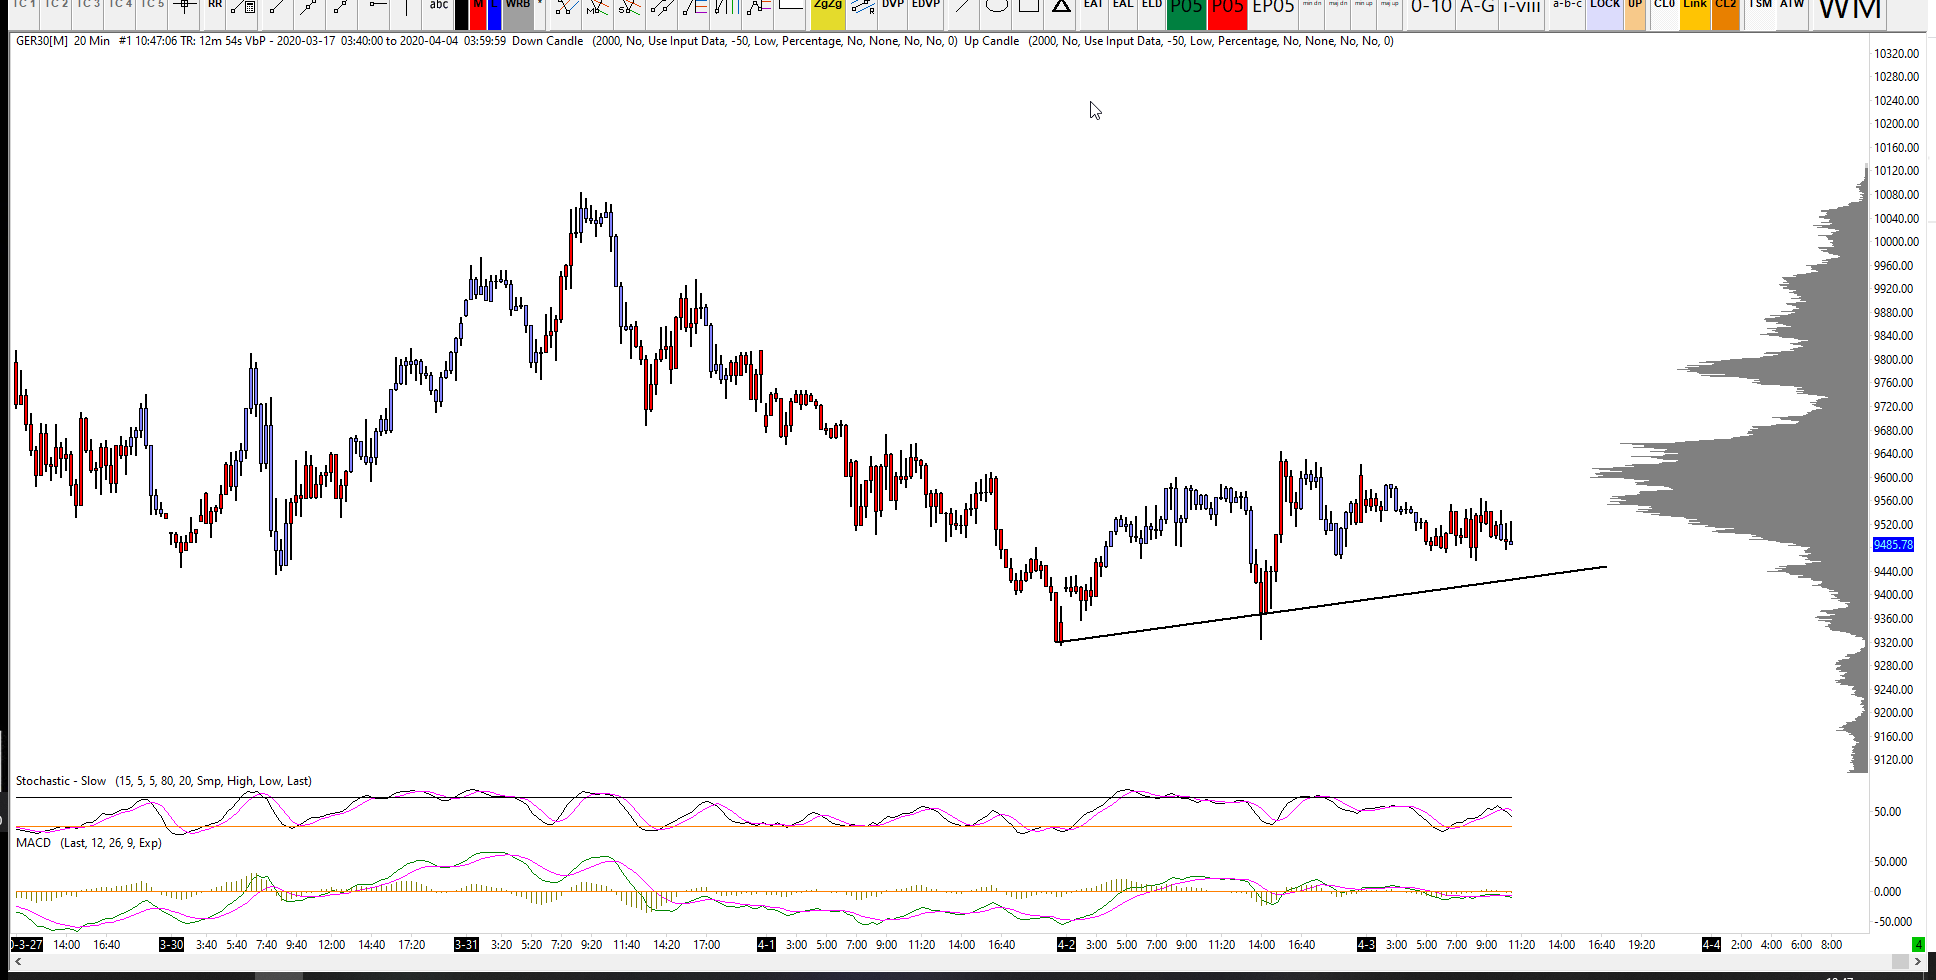 DAX Analysis for 03-04-2020